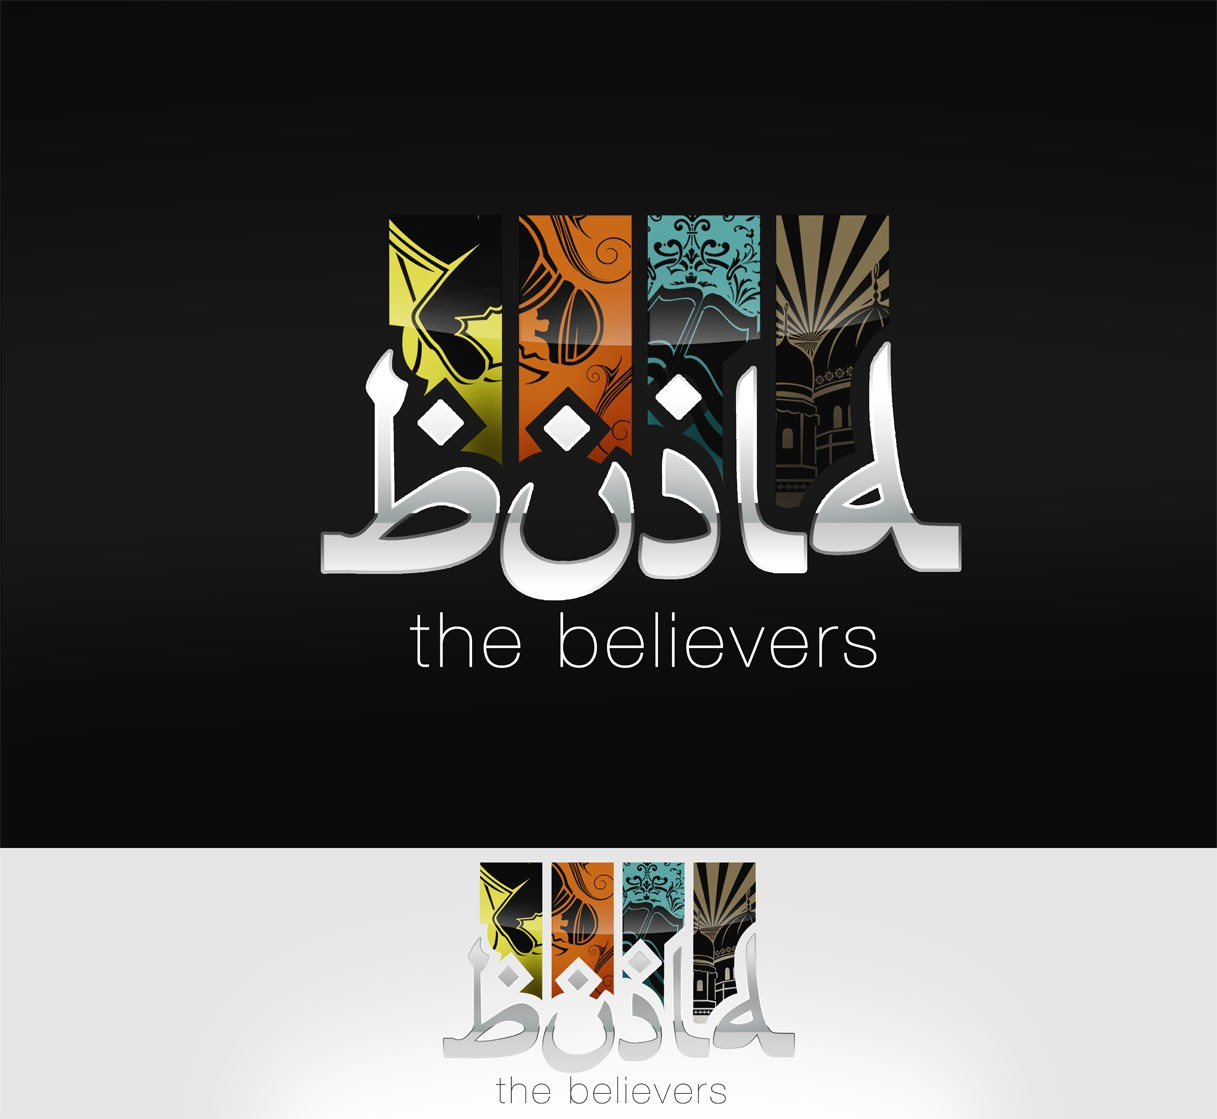 """NEW LOGO WANTED FOR """"BUILD THE BELIEVERS"""""""